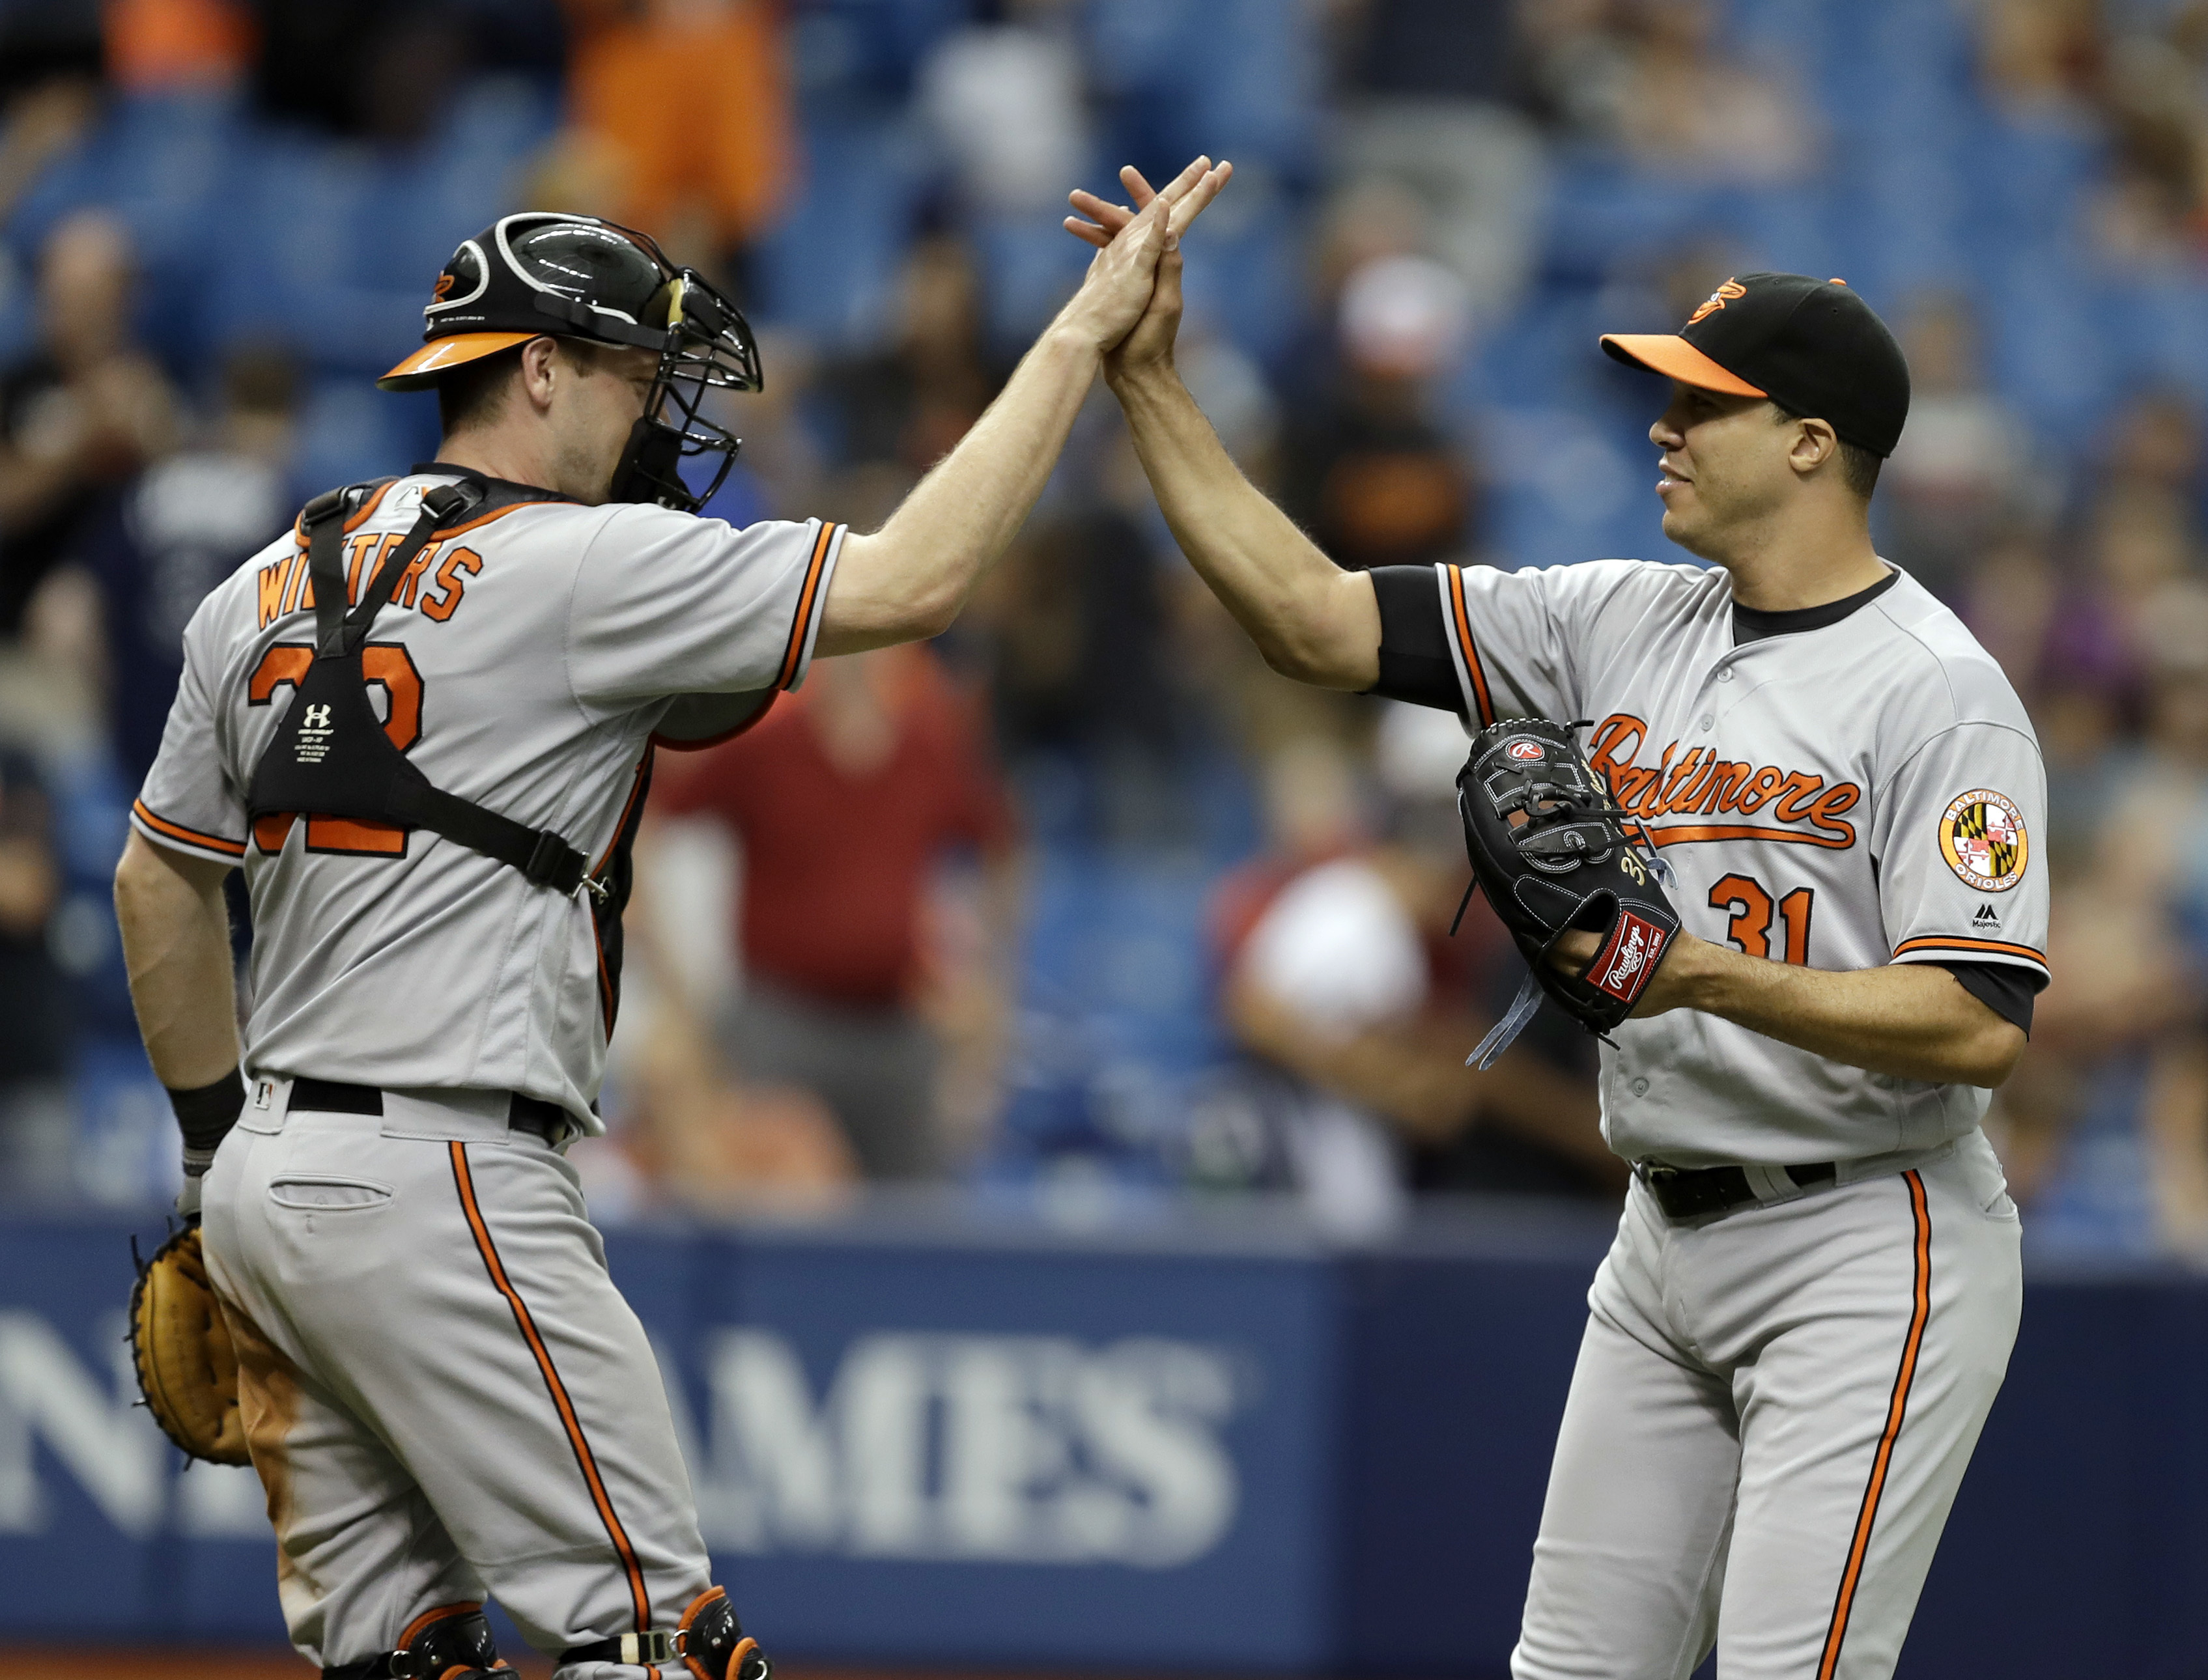 Baltimore Orioles starting pitcher Ubaldo Jimenez, right, high fives catcher Matt Wieters after closing out the Tampa Bay Rays during the ninth inning of a baseball game Monday, Sept. 5, 2016, in St. Petersburg, Fla. Jiminez pitched a complete game in the